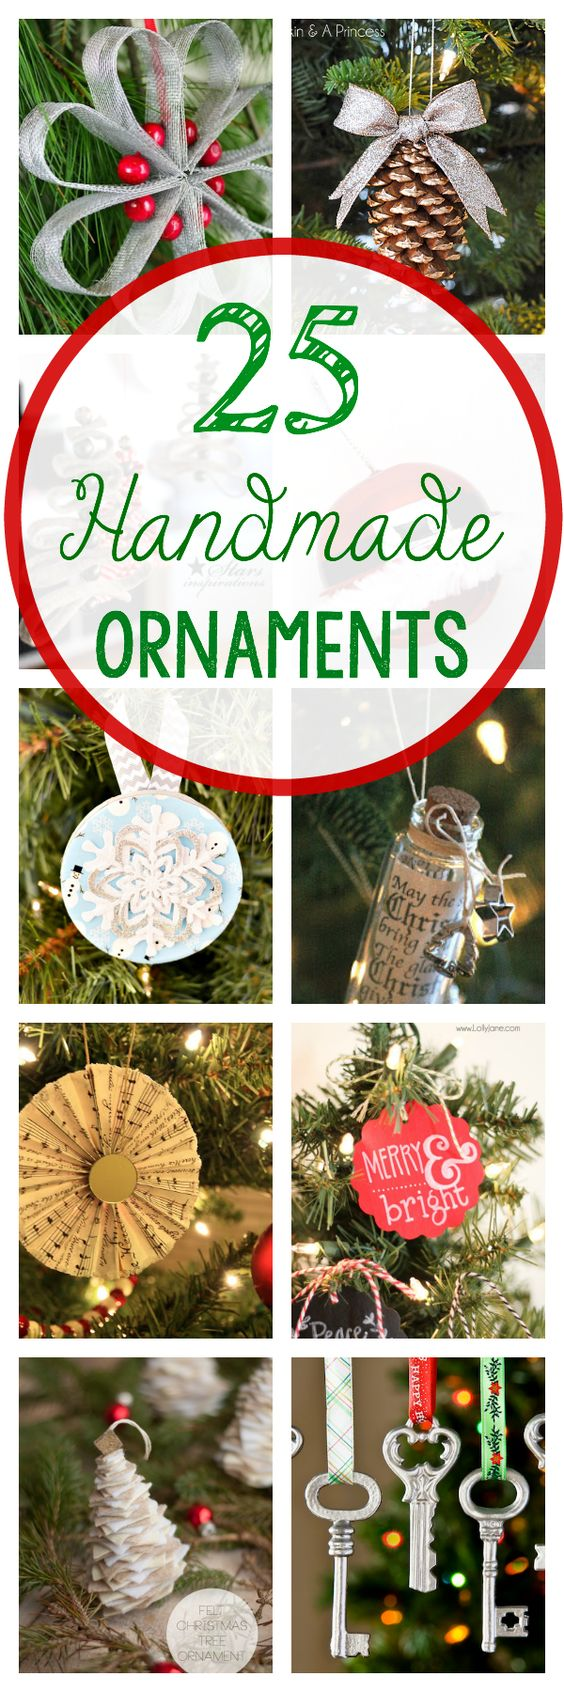 25 Handmade Christmas Ornaments Thanksgiving I Am And